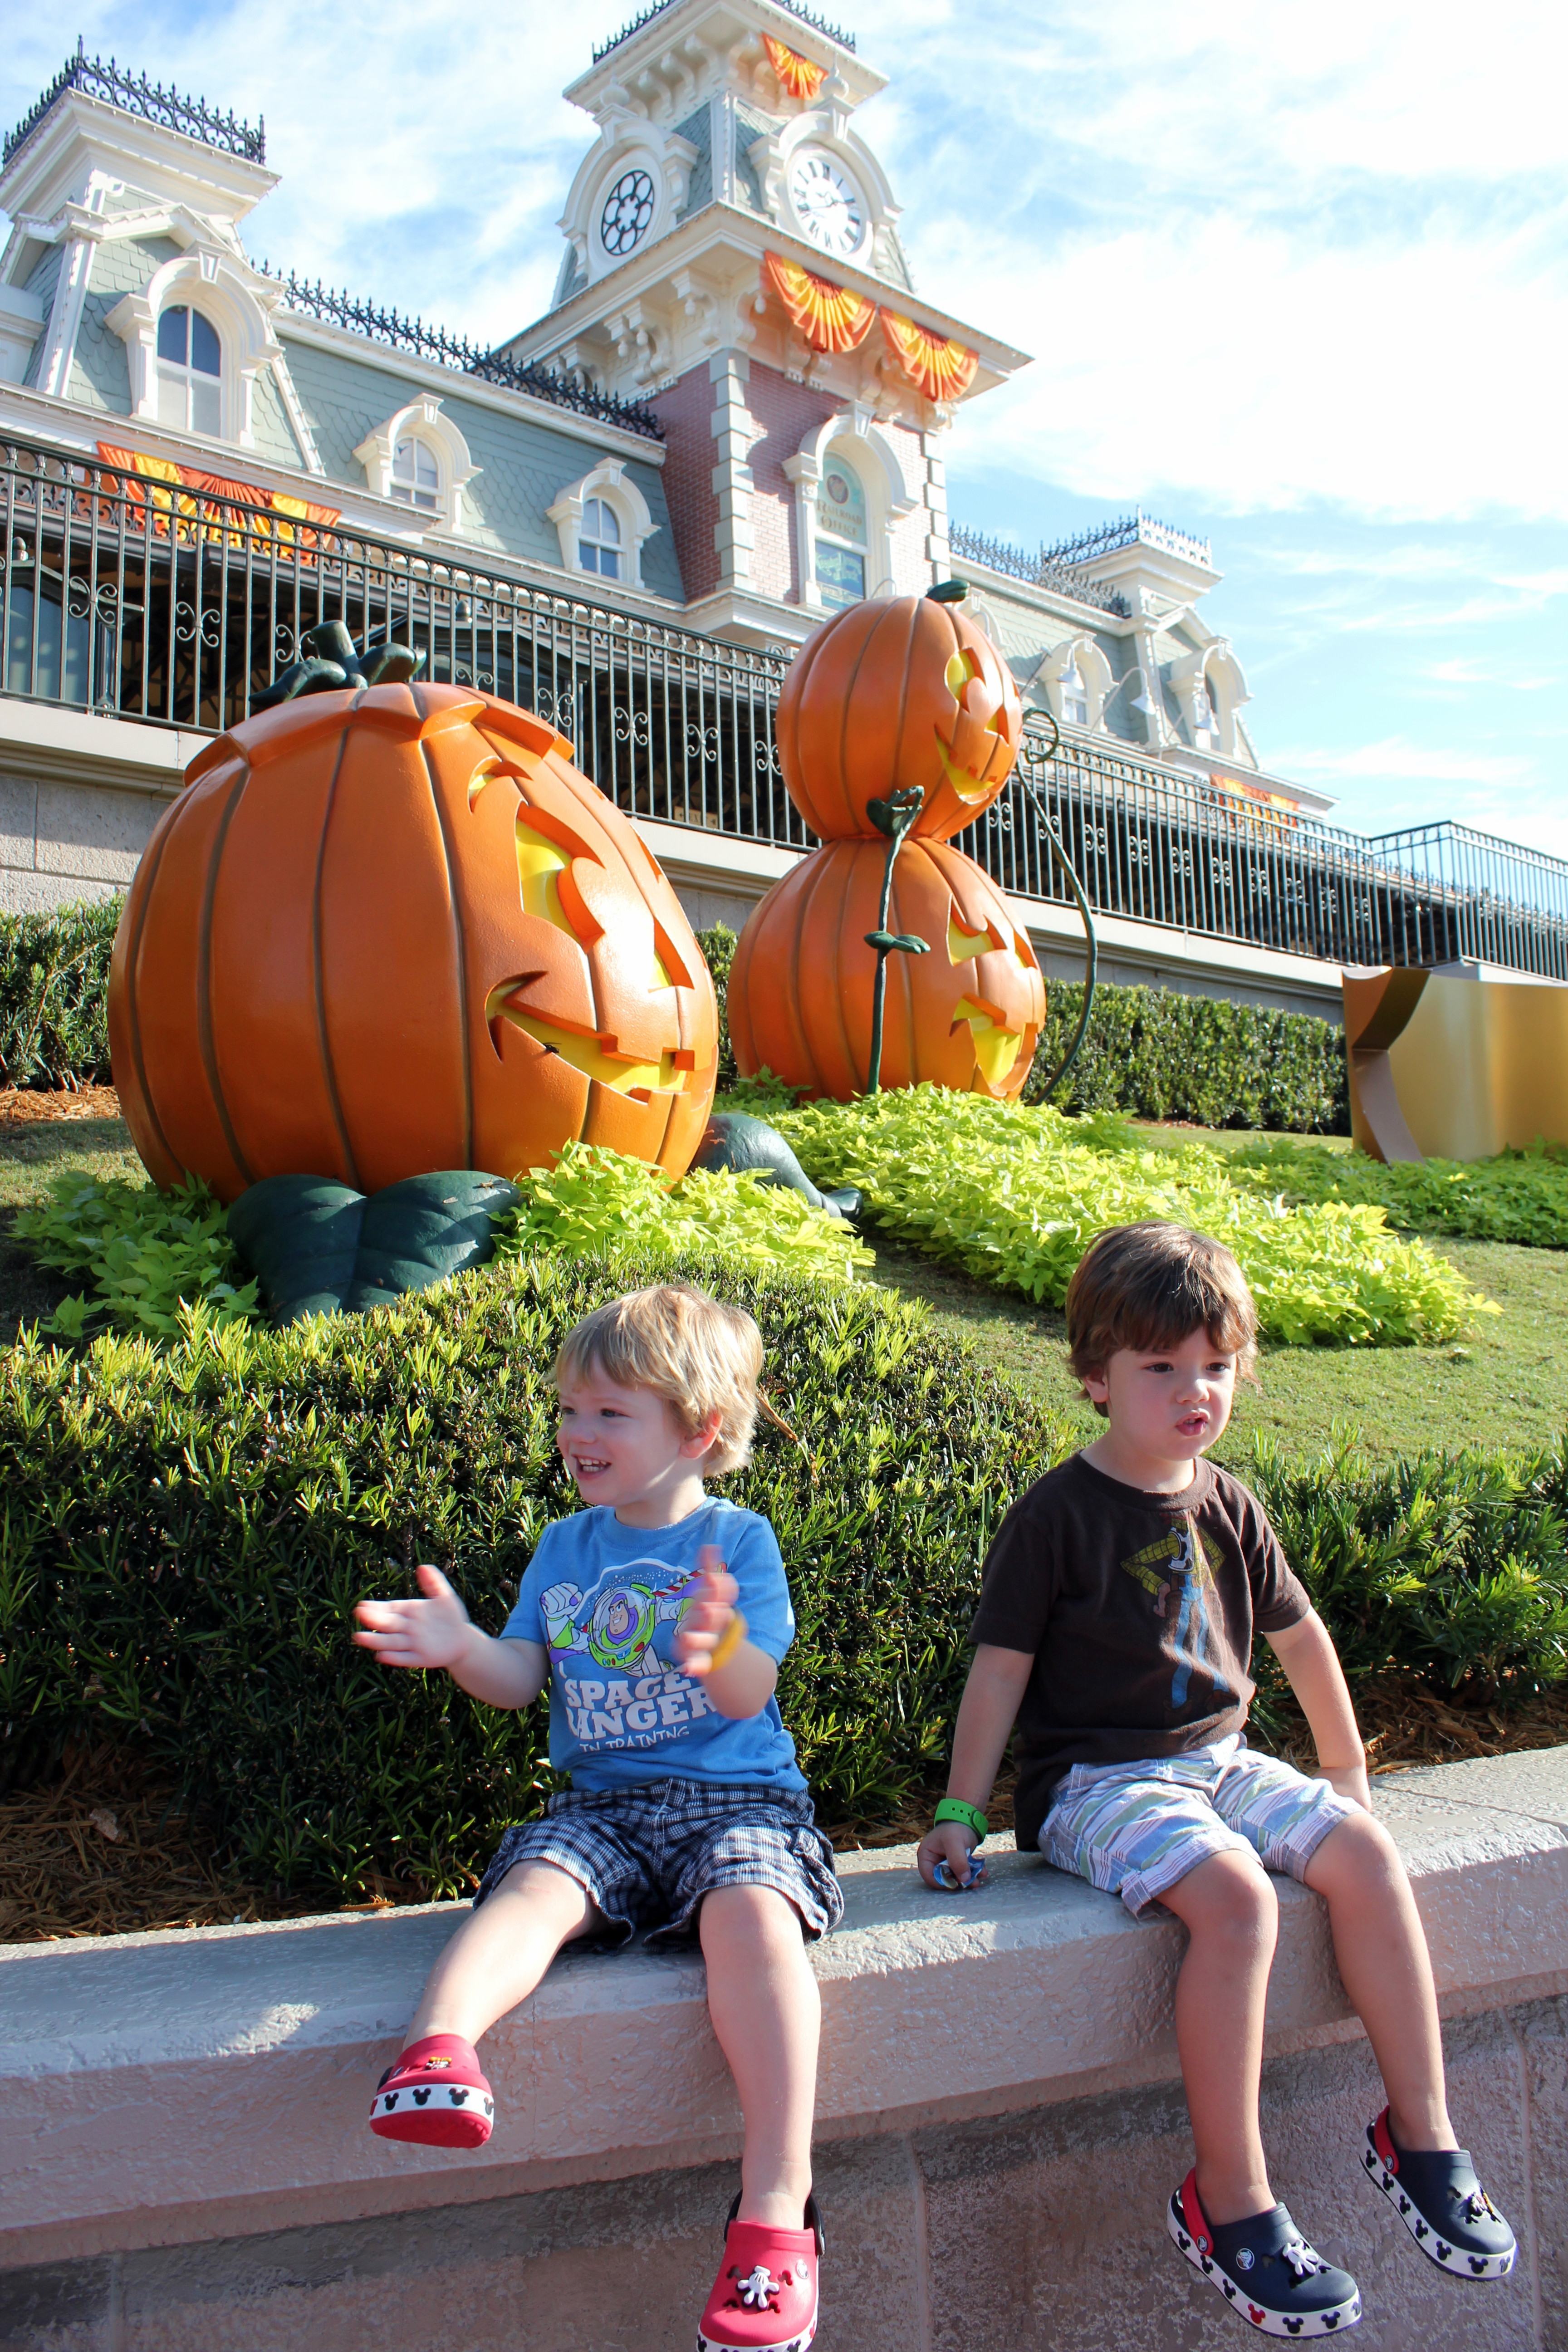 Disney with Little Ones: Conversations to Have Before the Trip